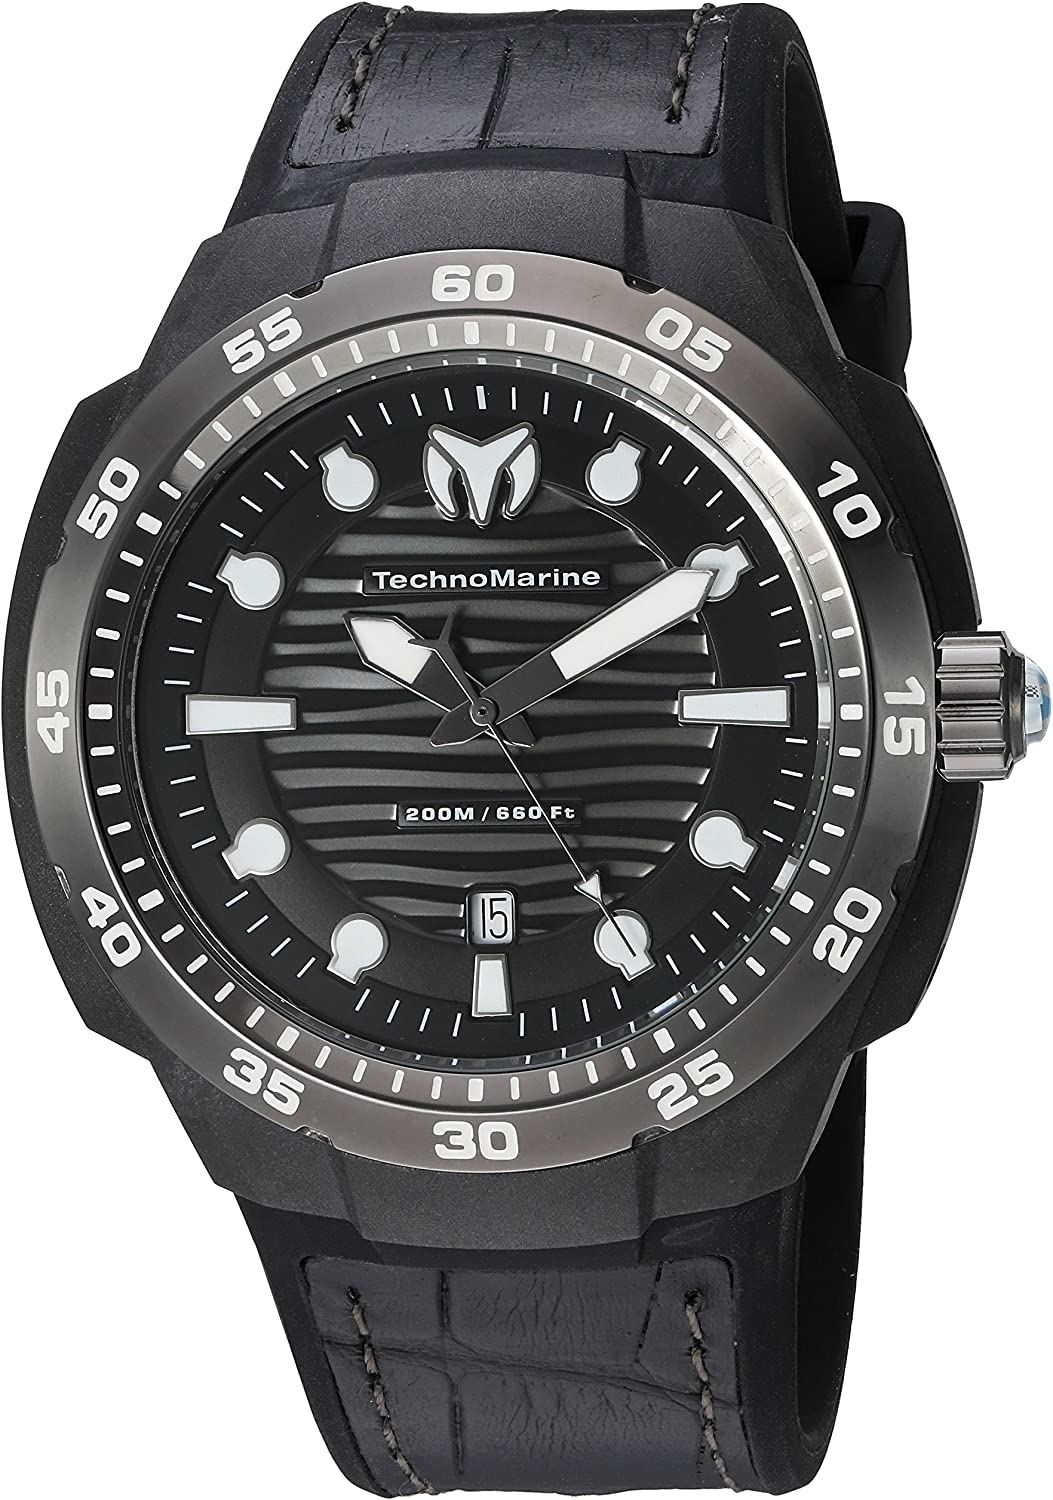 Technomarine Men's TM-515009 Sun Reef Analog Display Swiss Quartz Black Watch